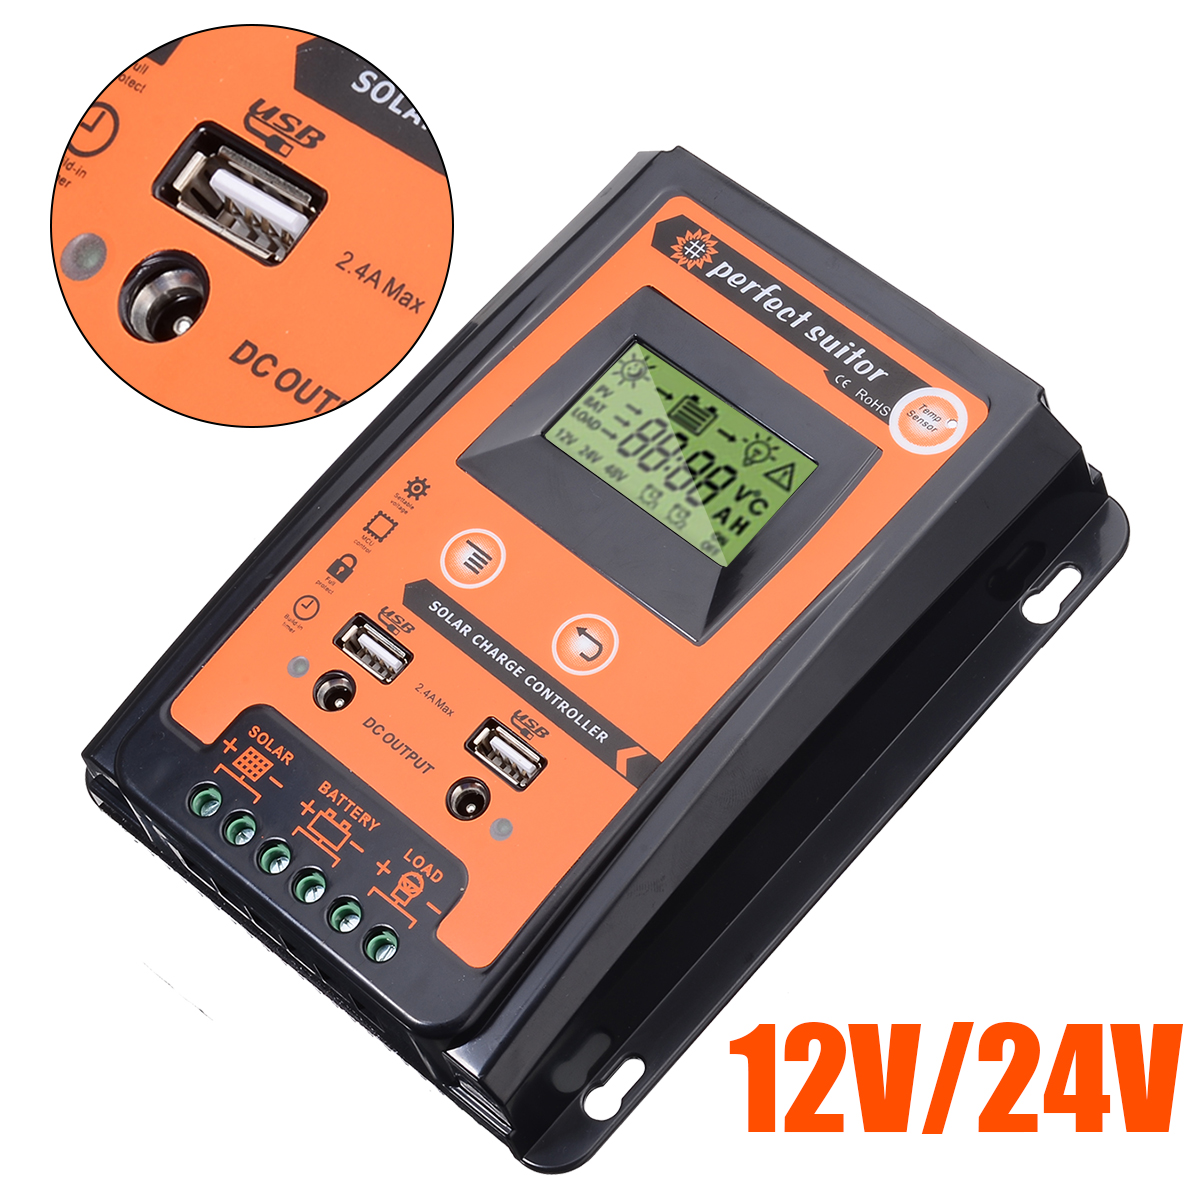 12V/24V <font><b>30A</b></font> Durable <font><b>Solar</b></font> <font><b>Charge</b></font> <font><b>Controller</b></font> Dual USB LCD Display <font><b>Solar</b></font> Panel Battery Regulator <font><b>PWM</b></font> <font><b>Solar</b></font> <font><b>Controller</b></font> image